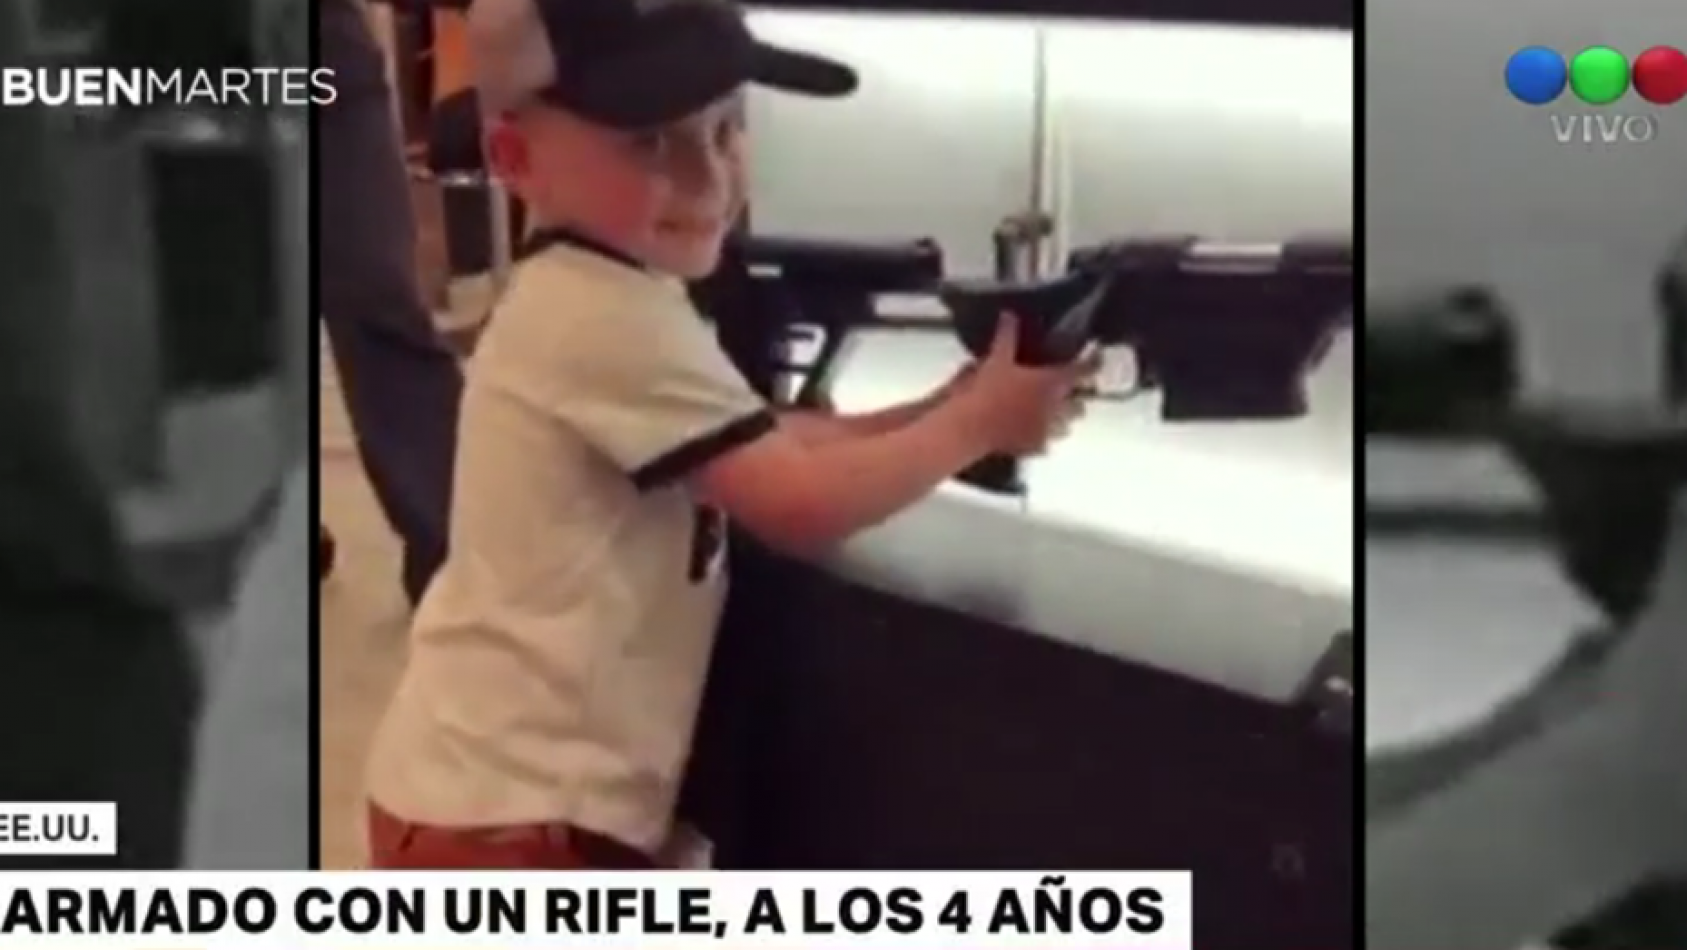 Terrible: Una periodista enseña a un niño de 4 años a usar un rifle (VIDEO)